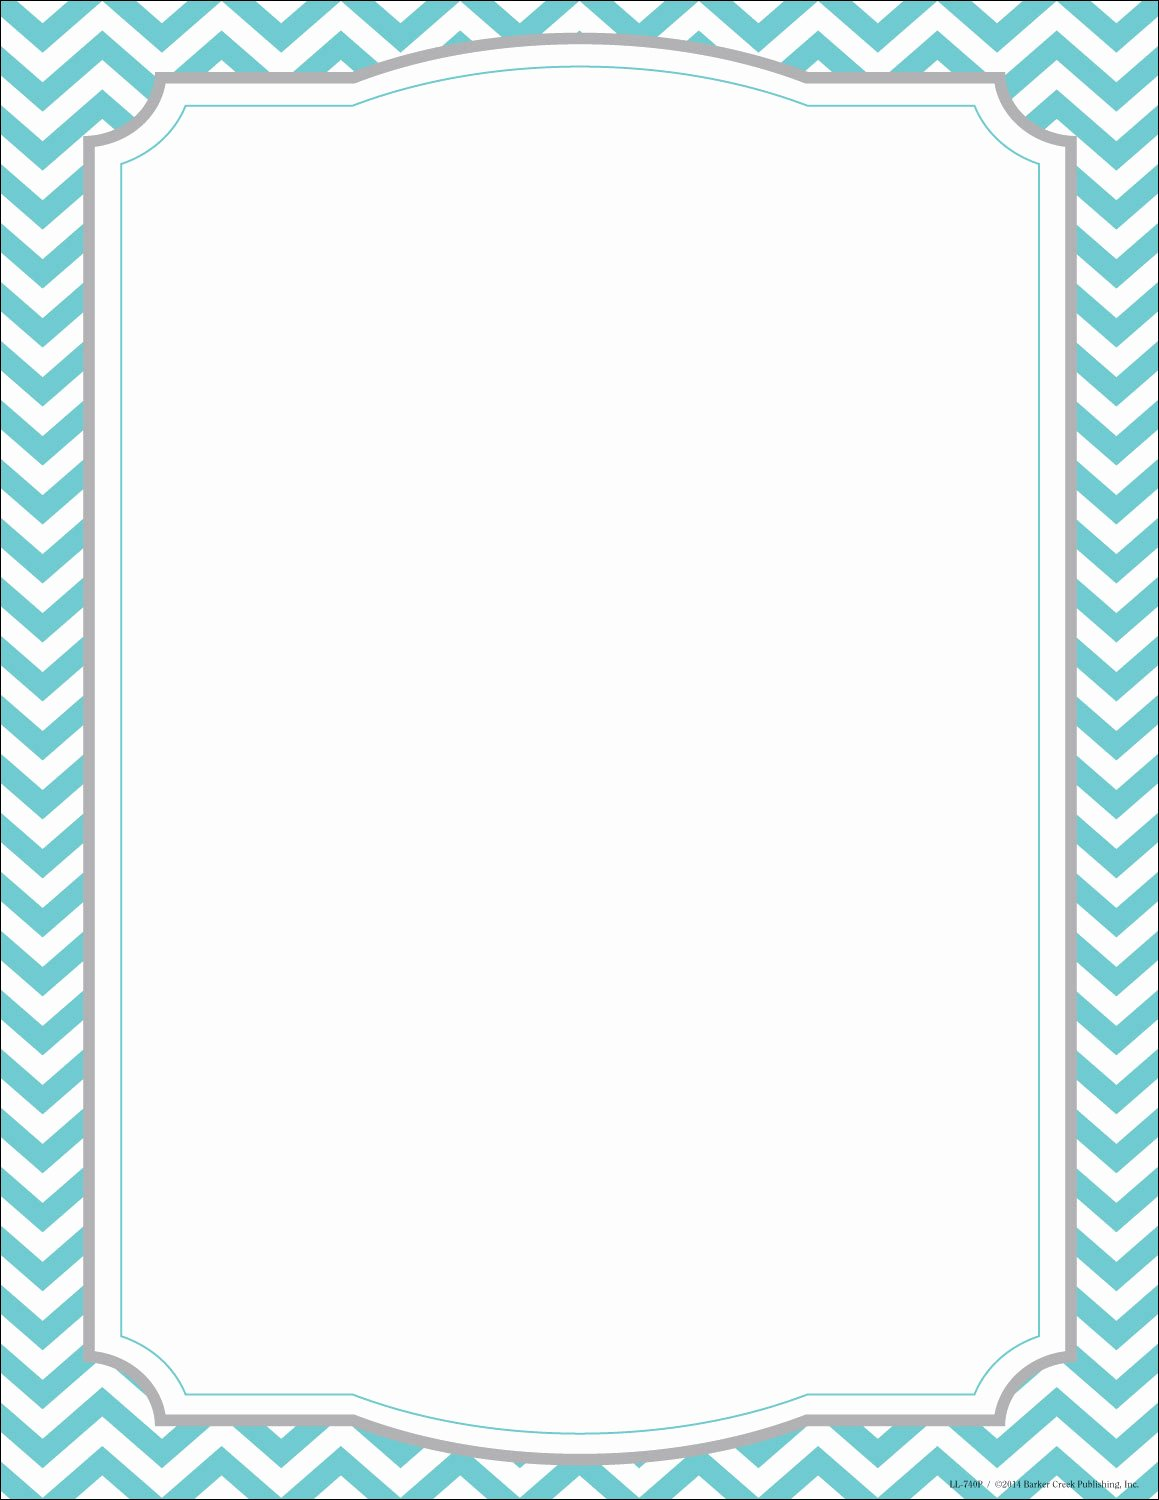 Free Border Templates for Teachers Fresh Free Teacher Paper Cliparts Download Free Clip Art Free